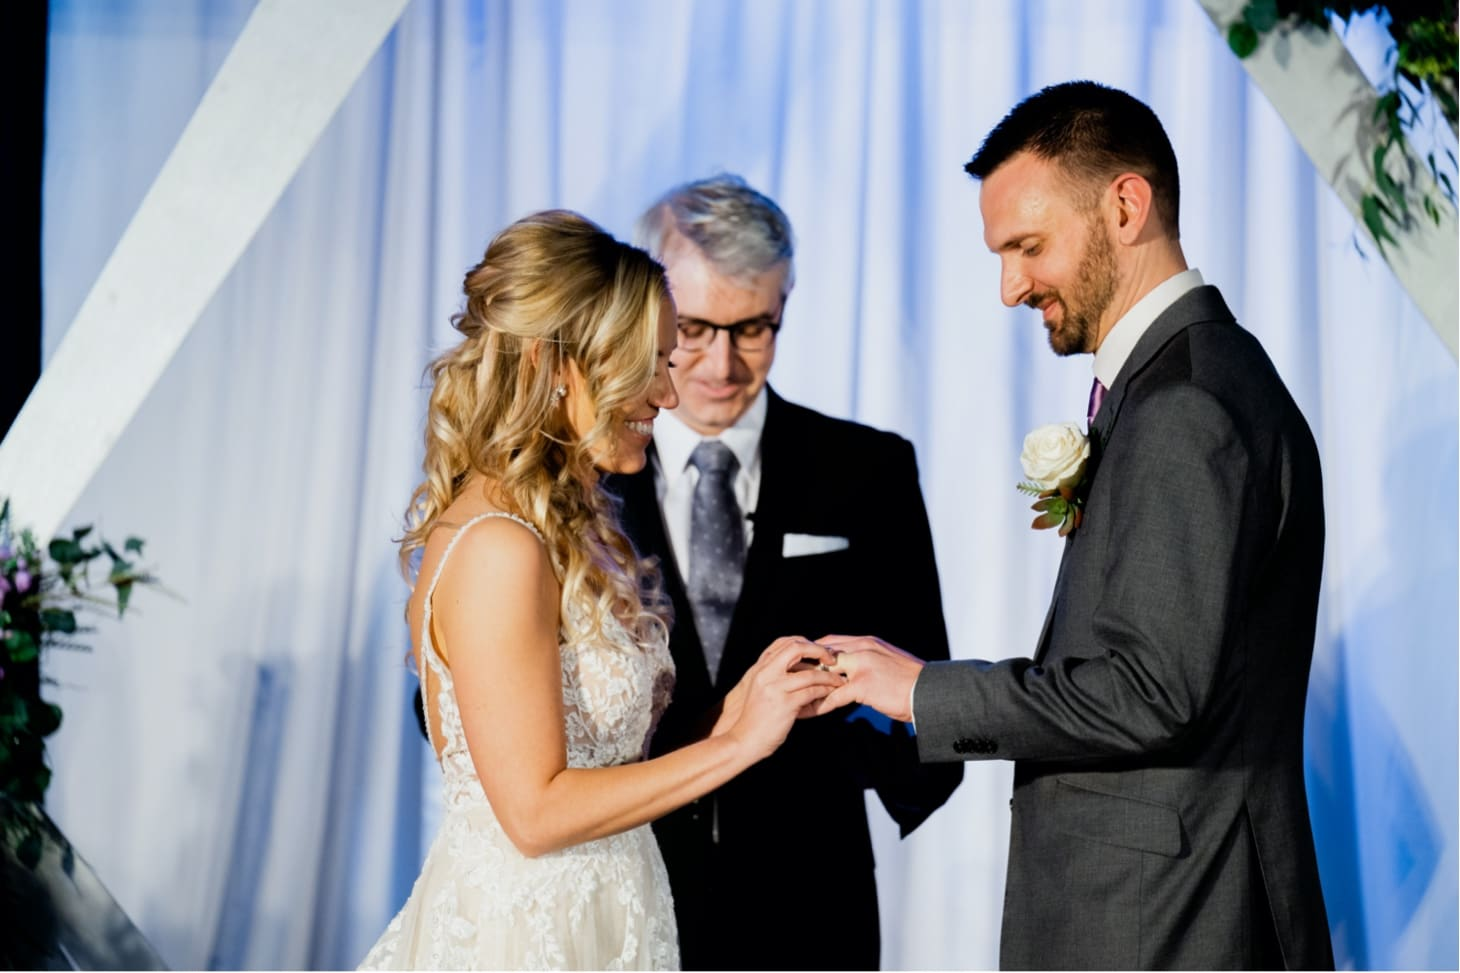 downtown Des Moines wedding ceremony